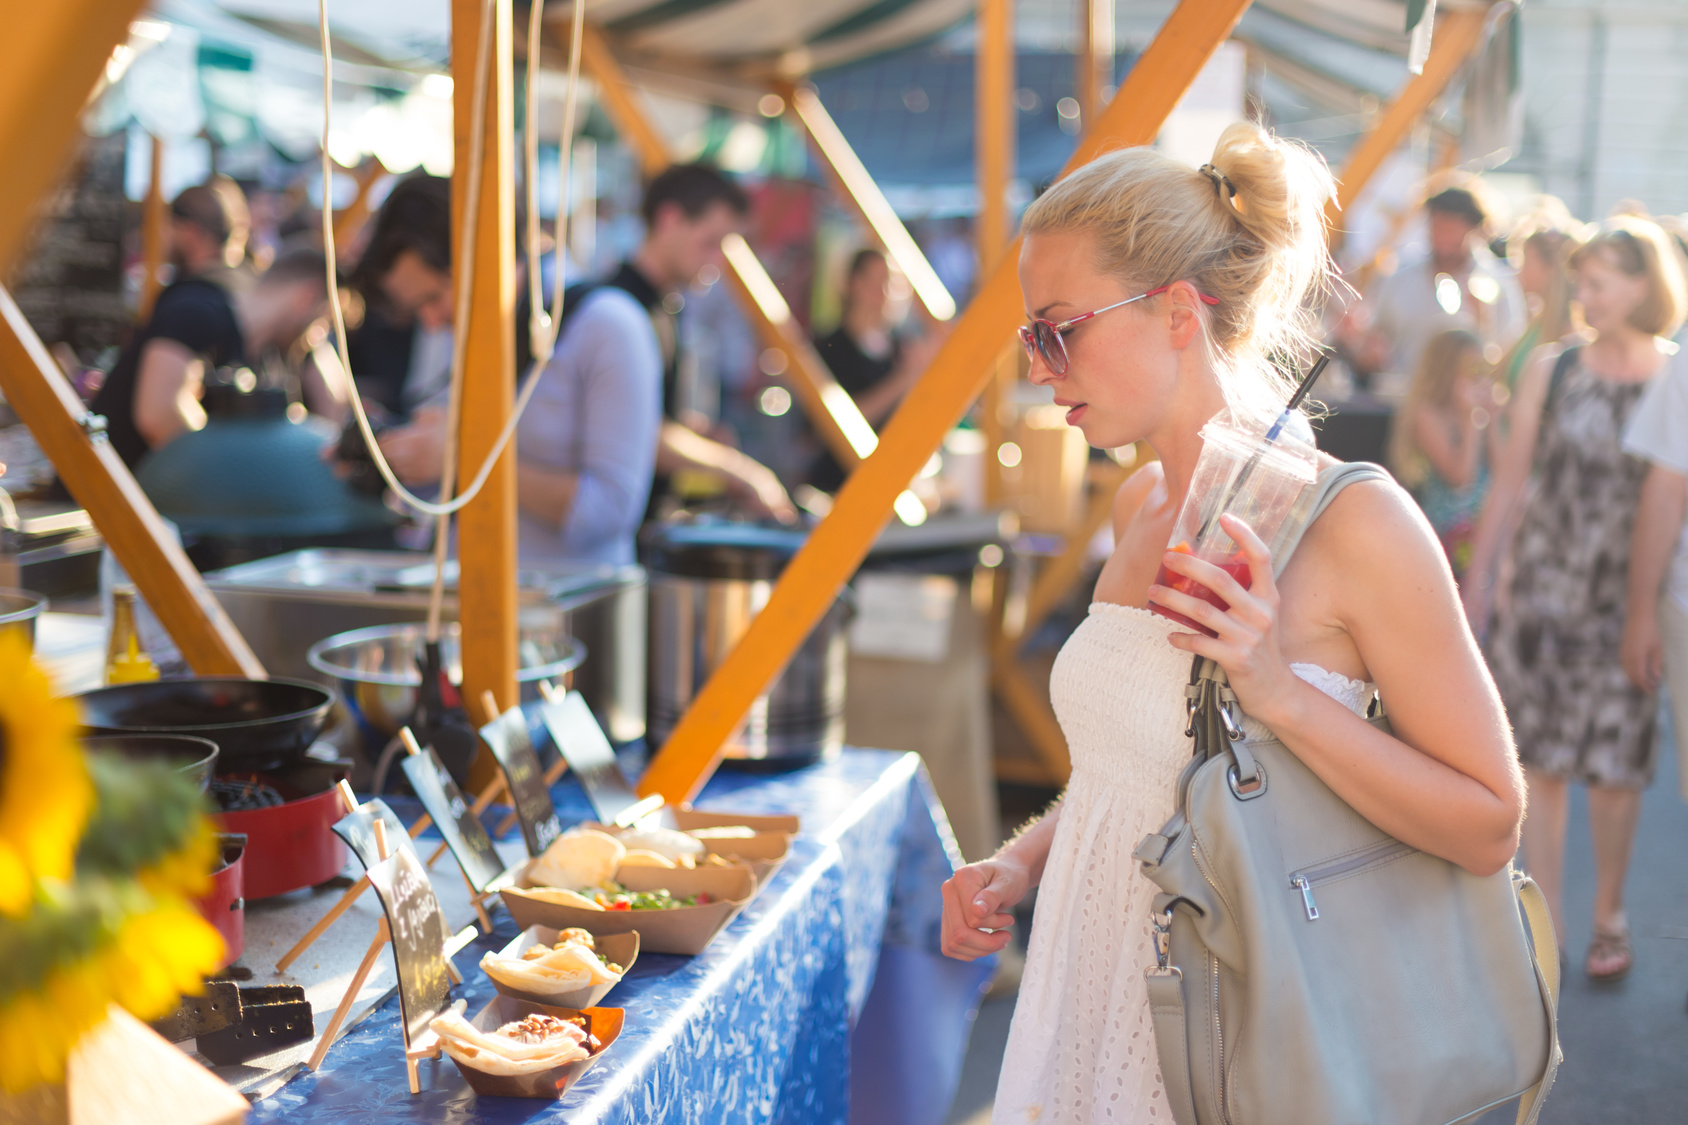 Woman-Looking-at-Food-at-Festival